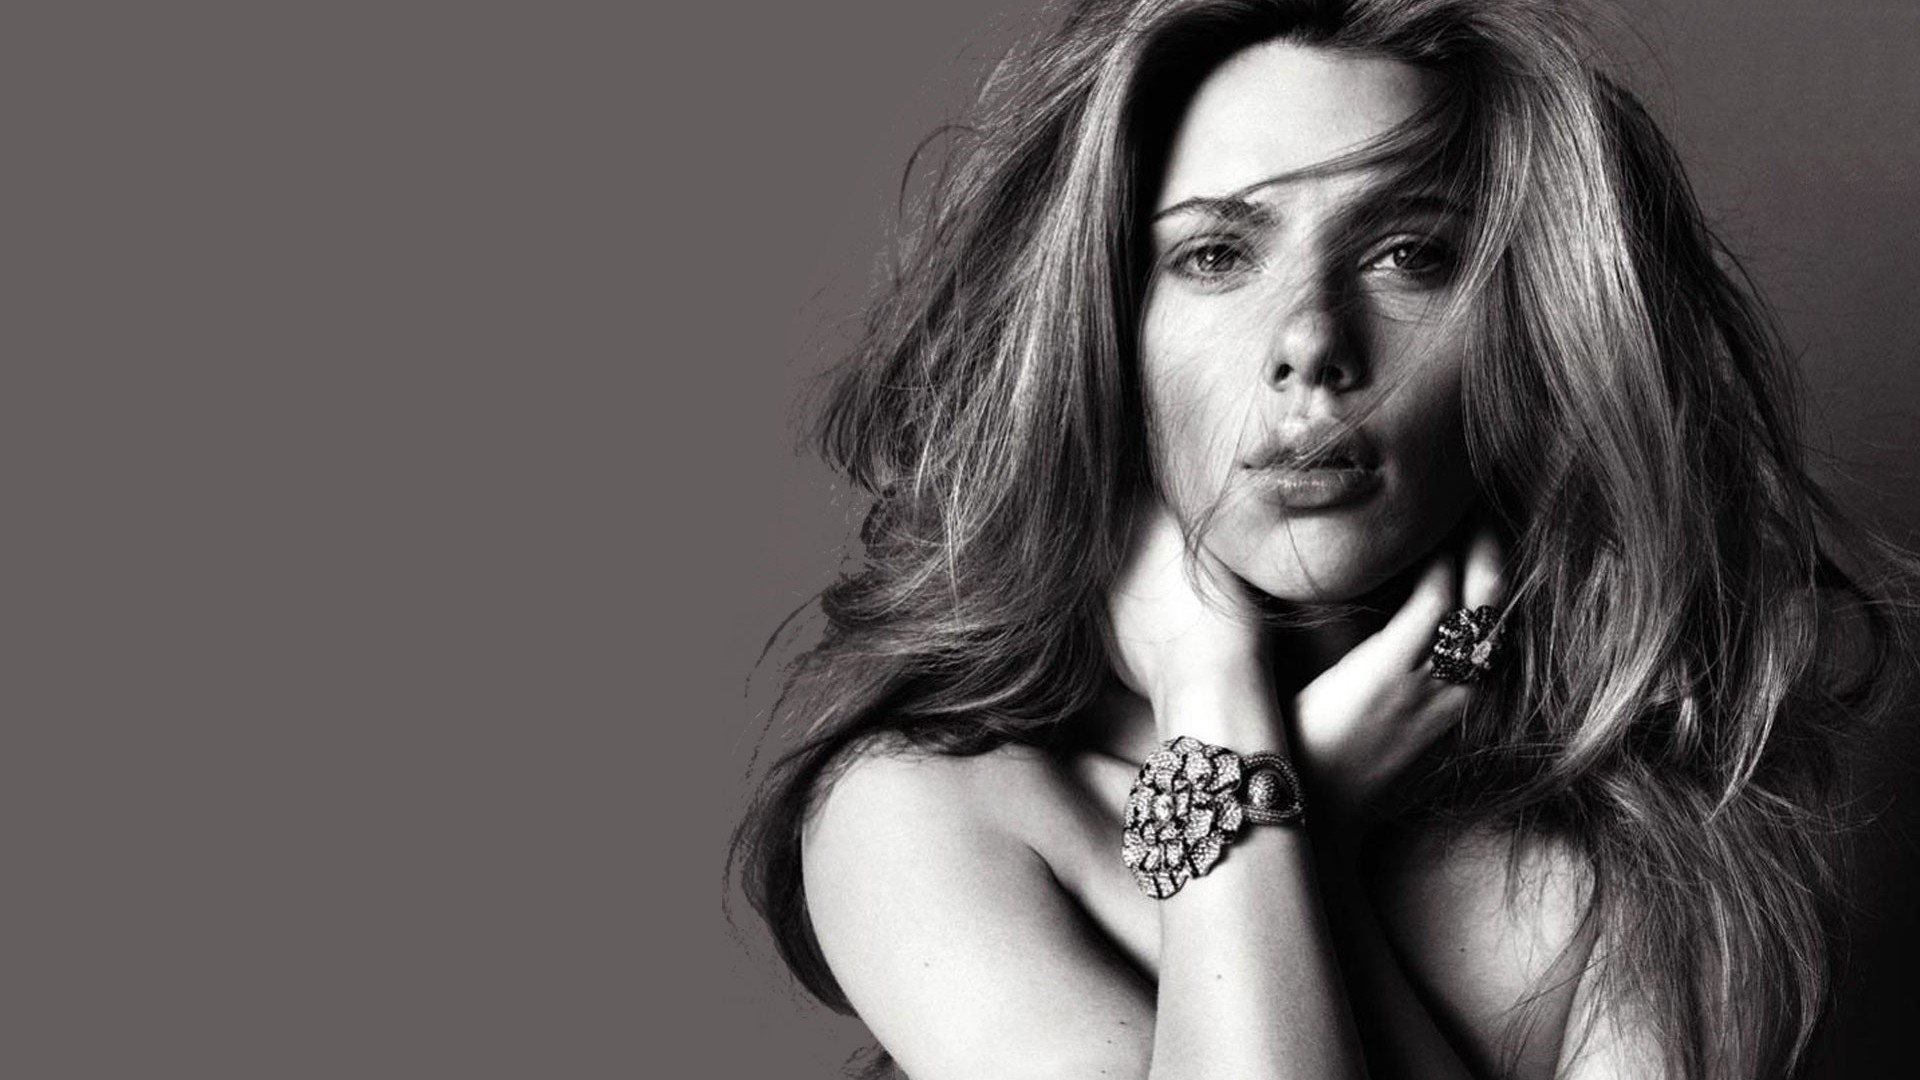 Scarlett Johansson Images Hd posted by Samantha Cunningham